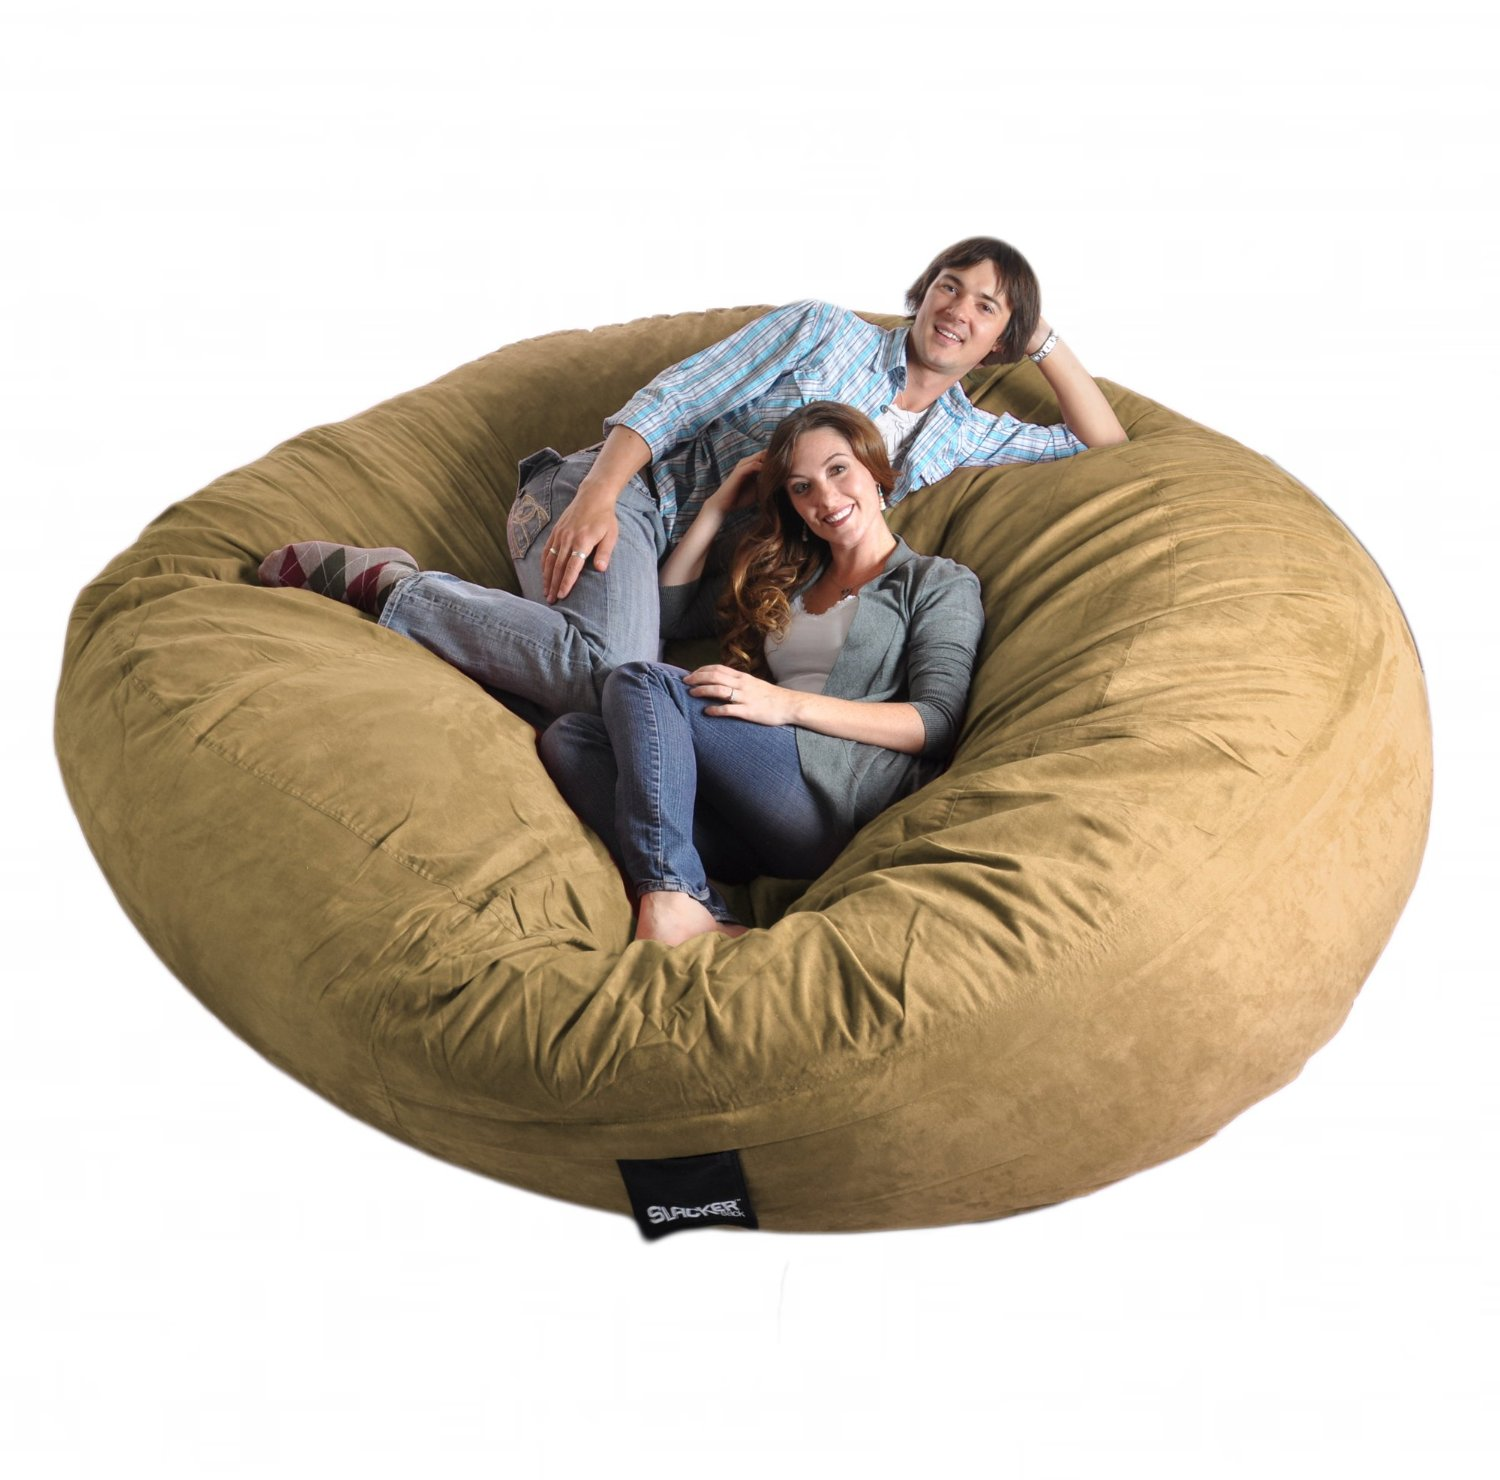 Love Sac Bean Bag Chair Amazon 8 Feet Round Light Brown Tan Xxxl Foam Bean Bag Chair Microfiber Suede Giant Slacker Sack Like Lovesac Biggest Beanbag Home Kitchen